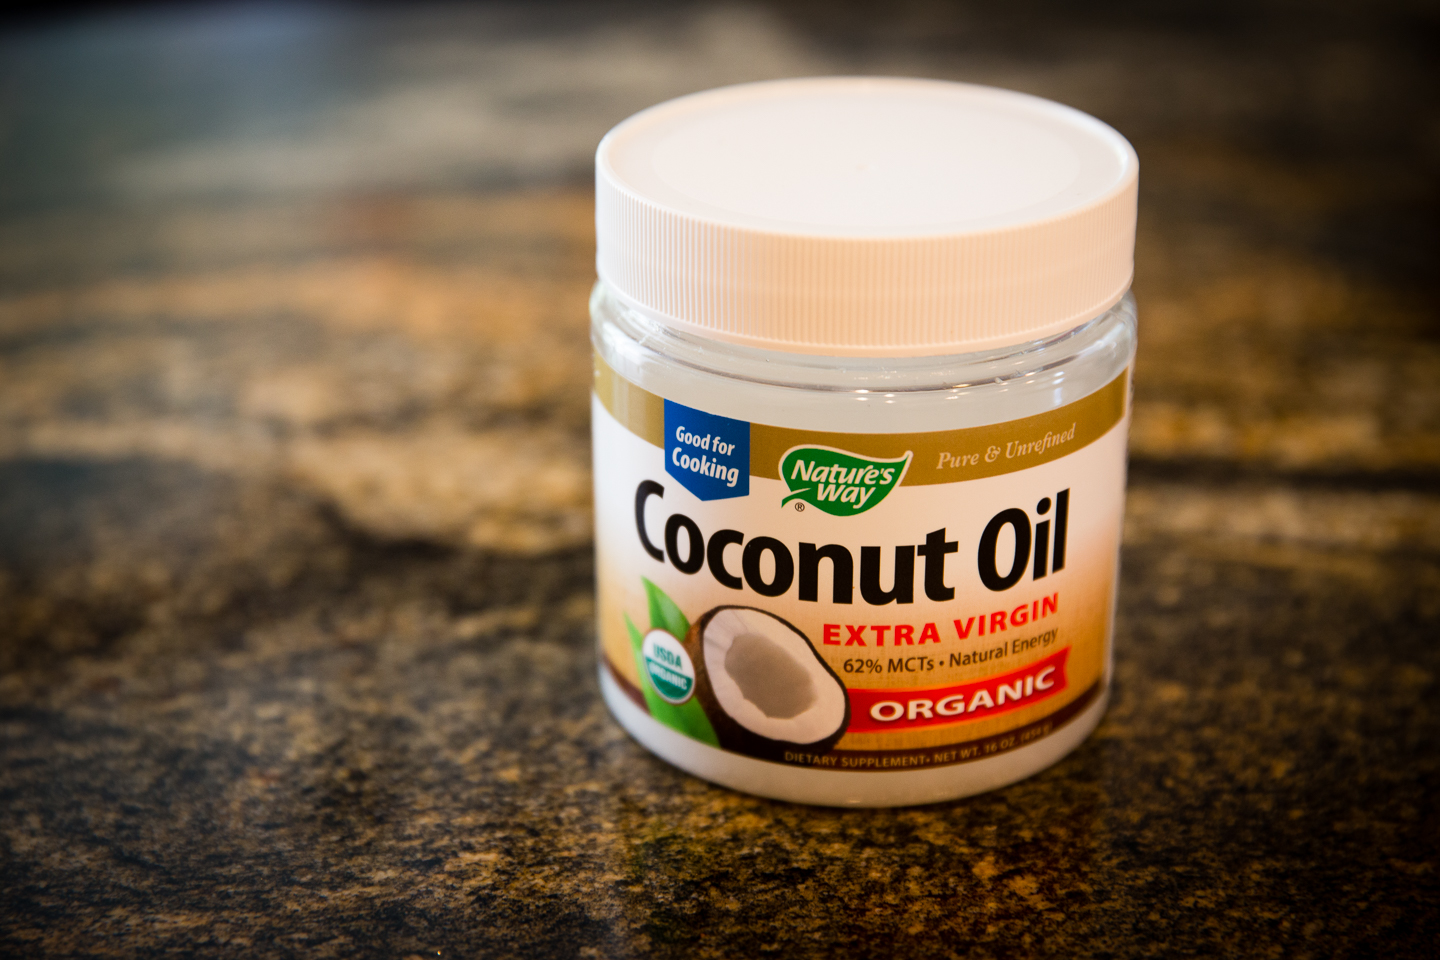 4-Coconut Oil